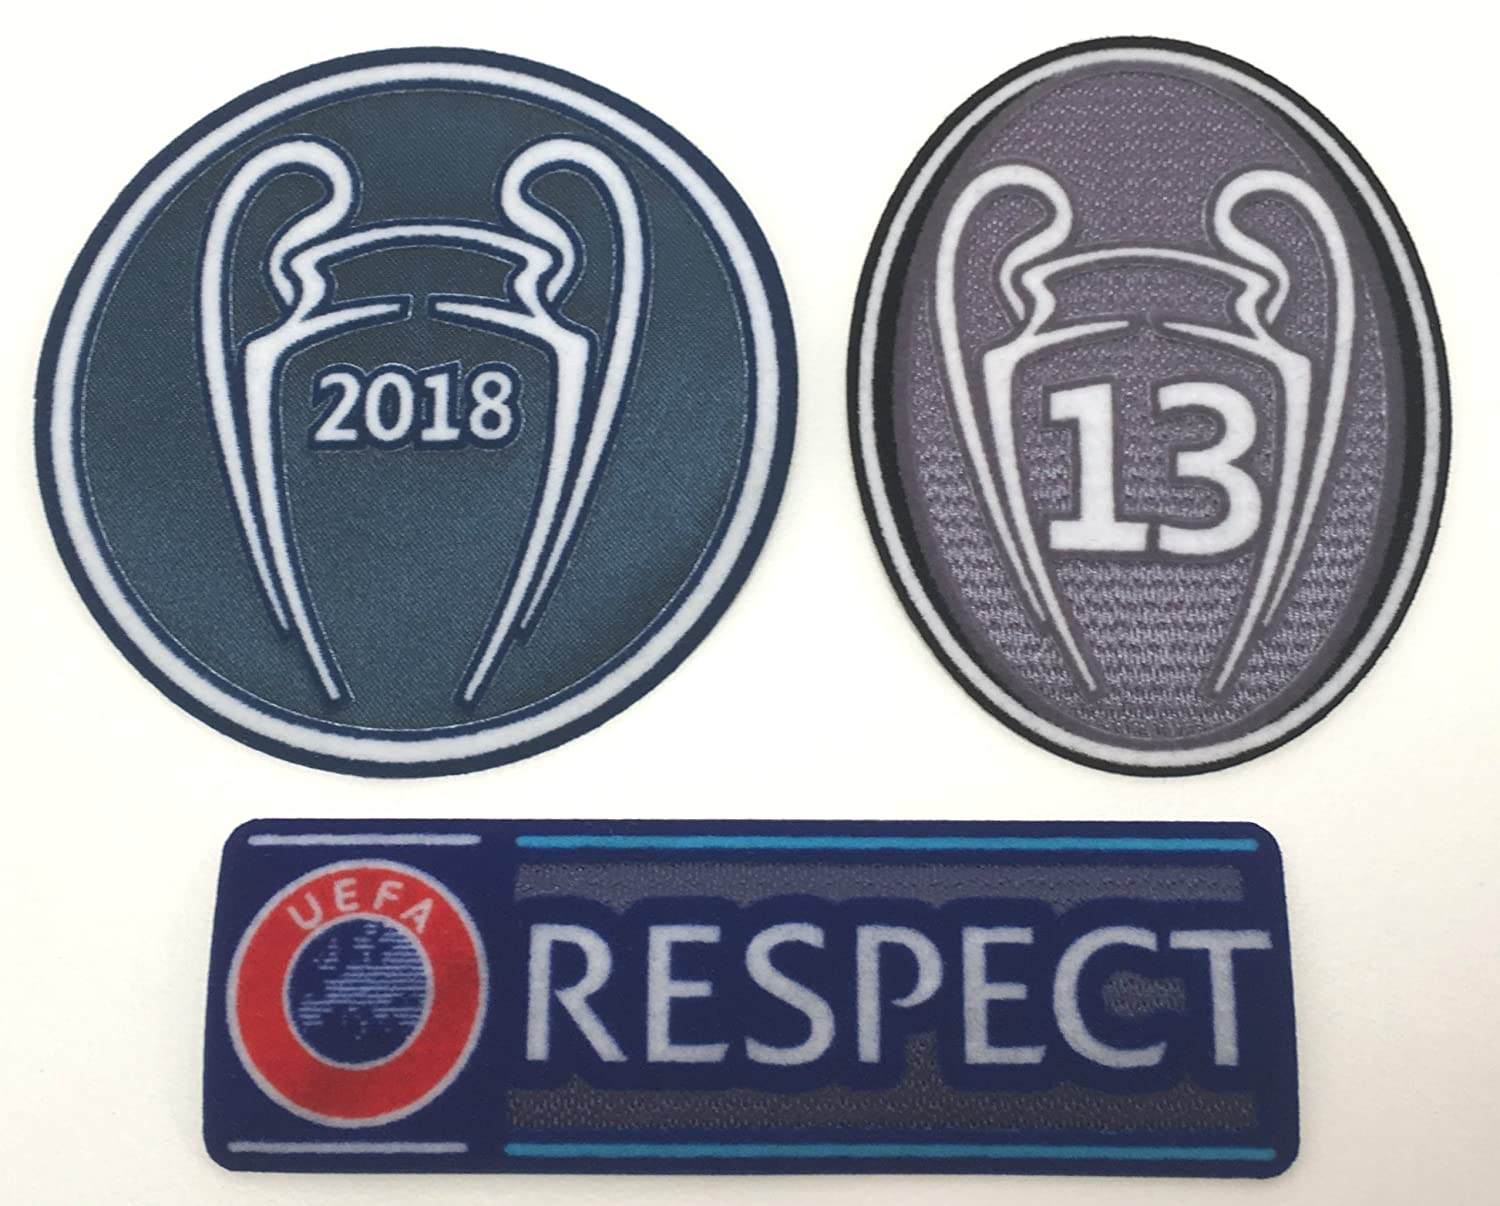 Real Madrid FC Soccer Patch Set 2018 2019 La Tredecima Jersey Badges Football Shirt Patches Champions League Trophy 13 Cup Honor